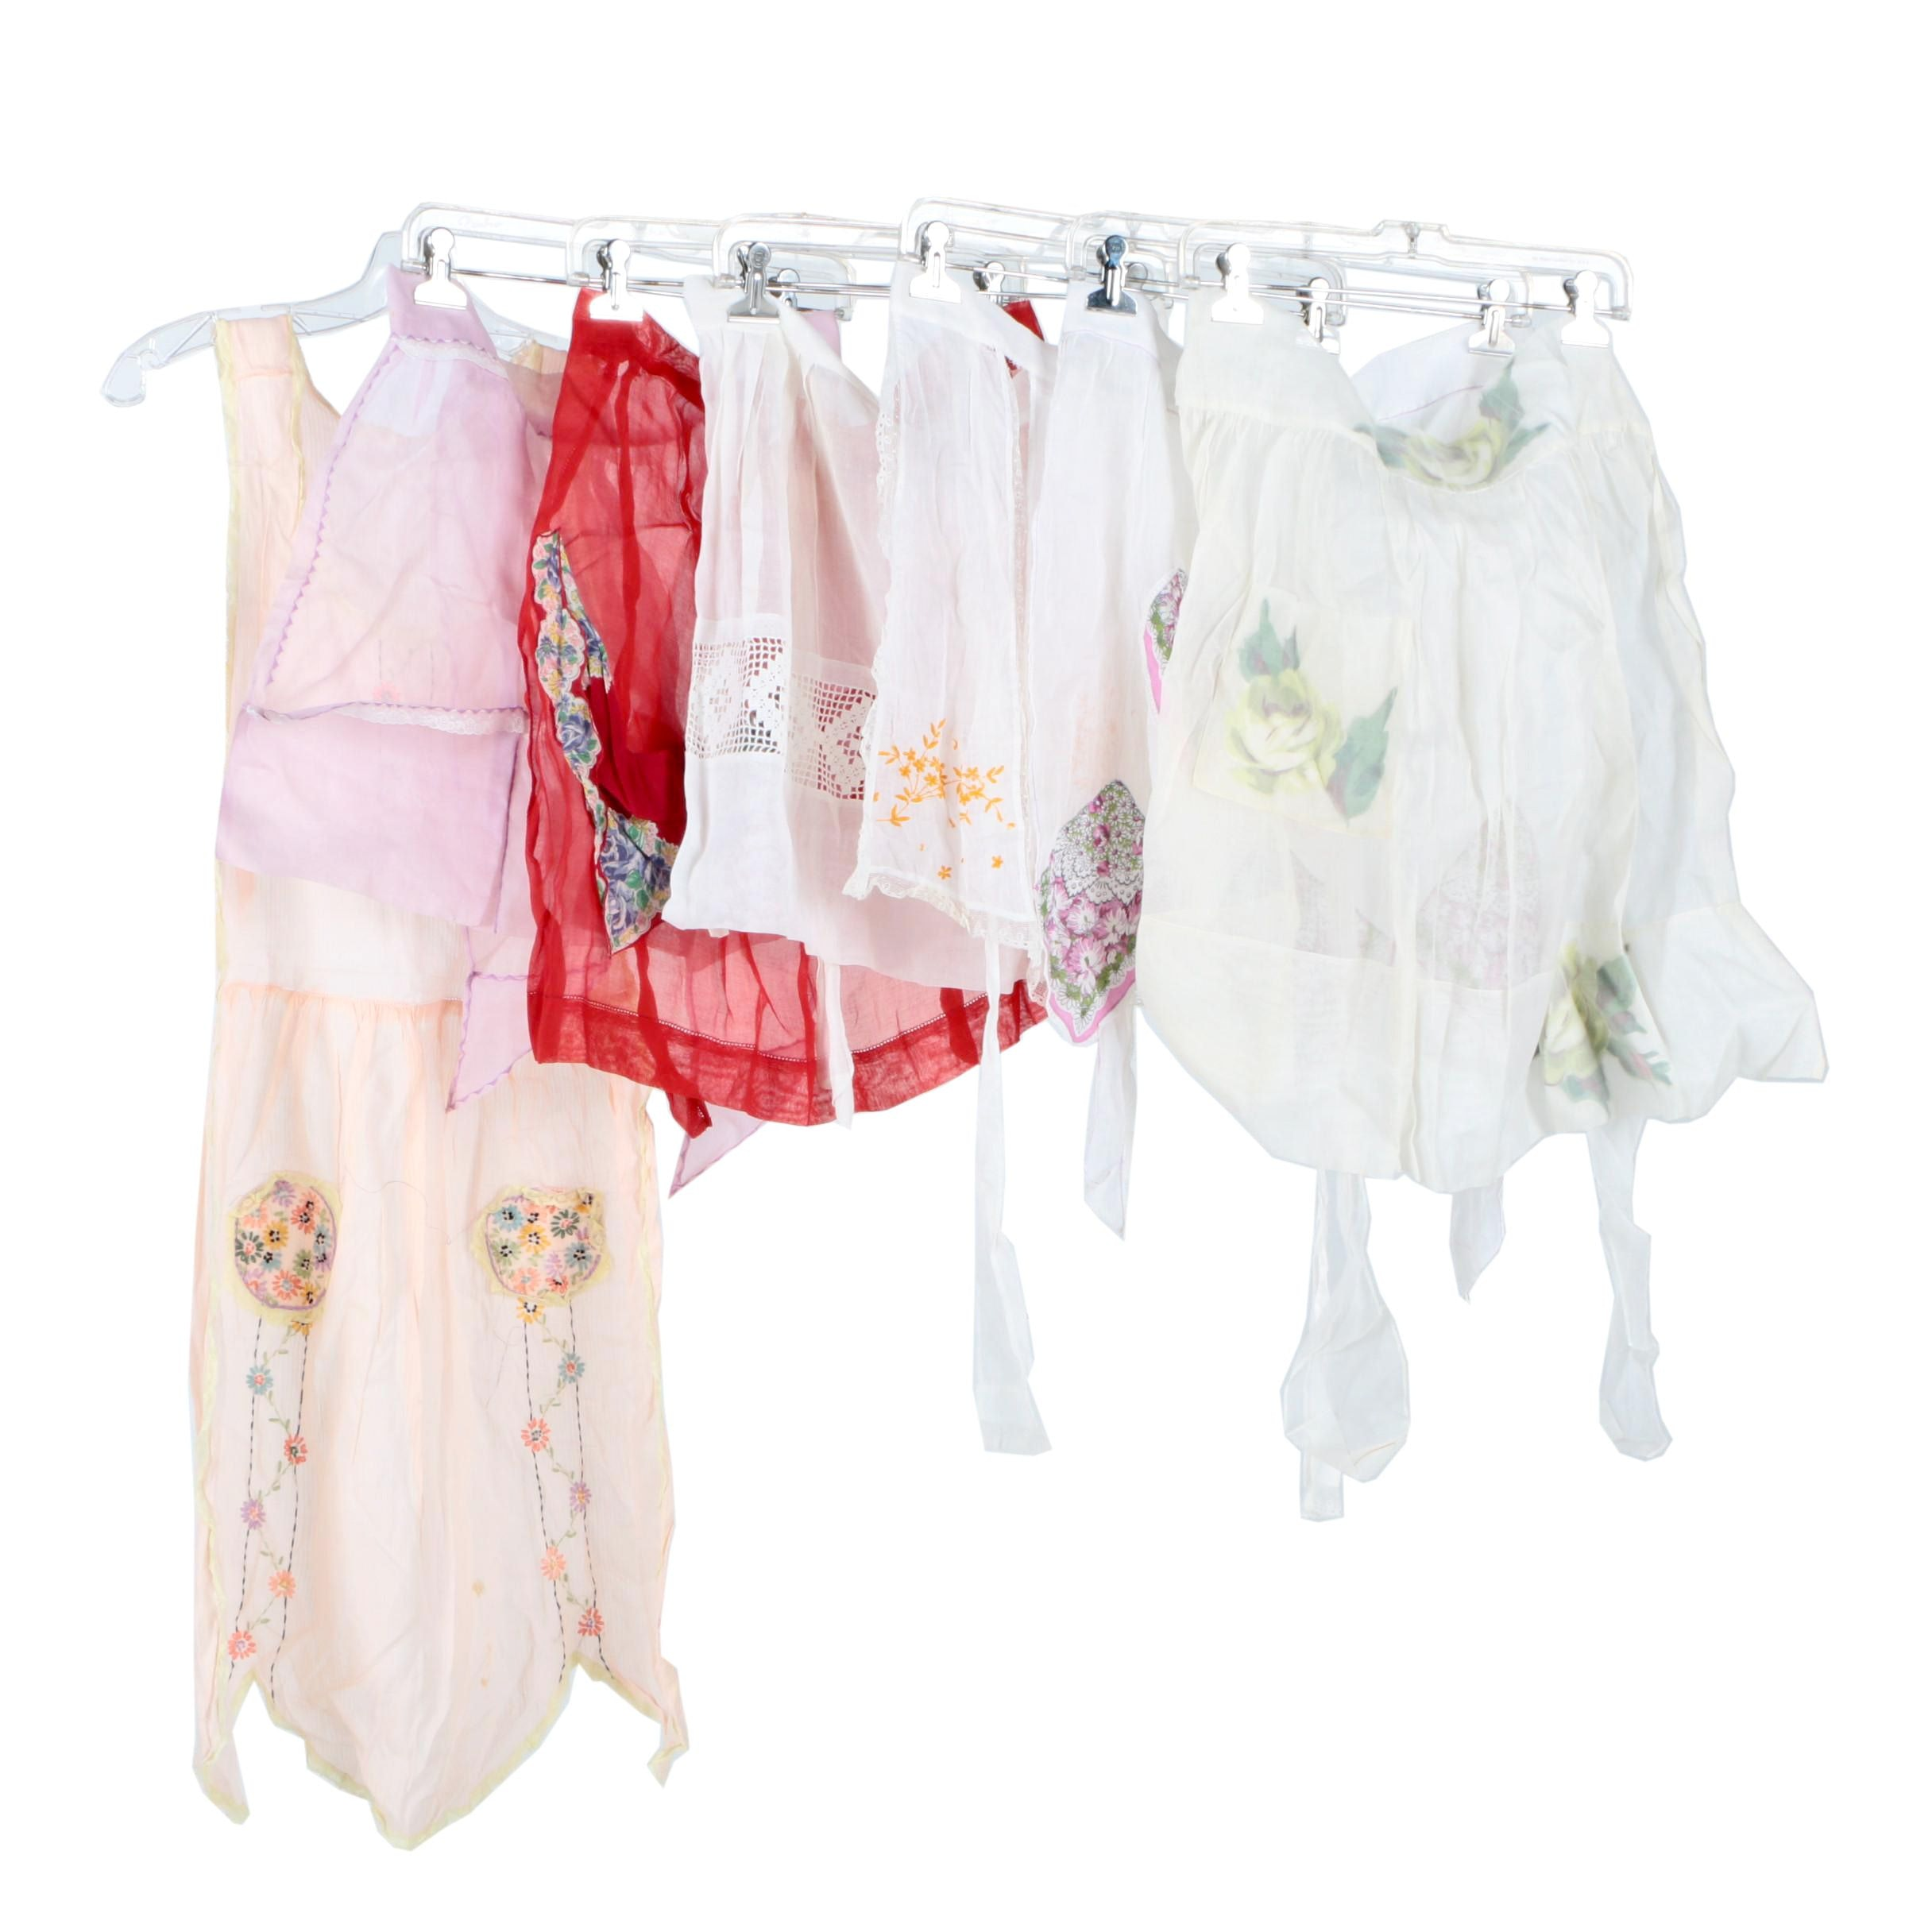 Vintage Lace and Embroidered Aprons